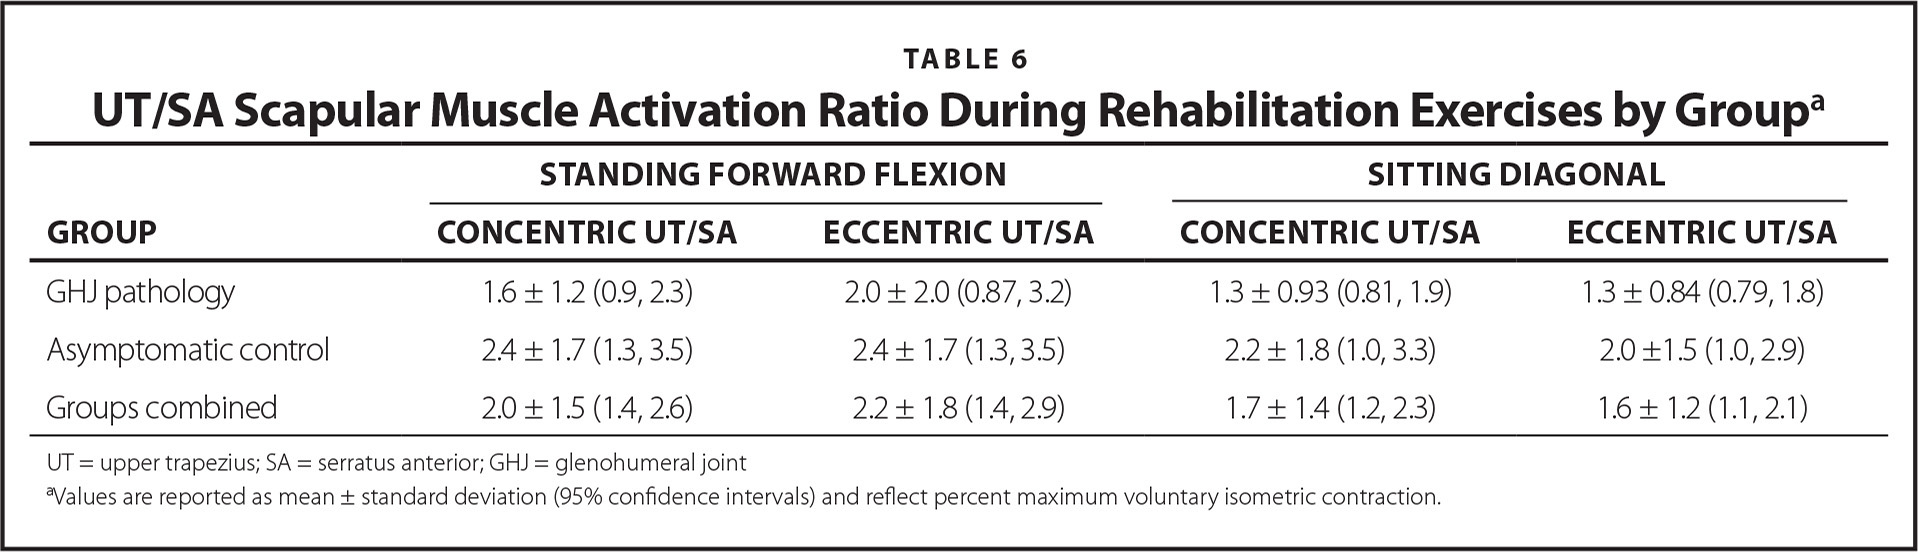 UT/SA Scapular Muscle Activation Ratio During Rehabilitation Exercises by Groupa